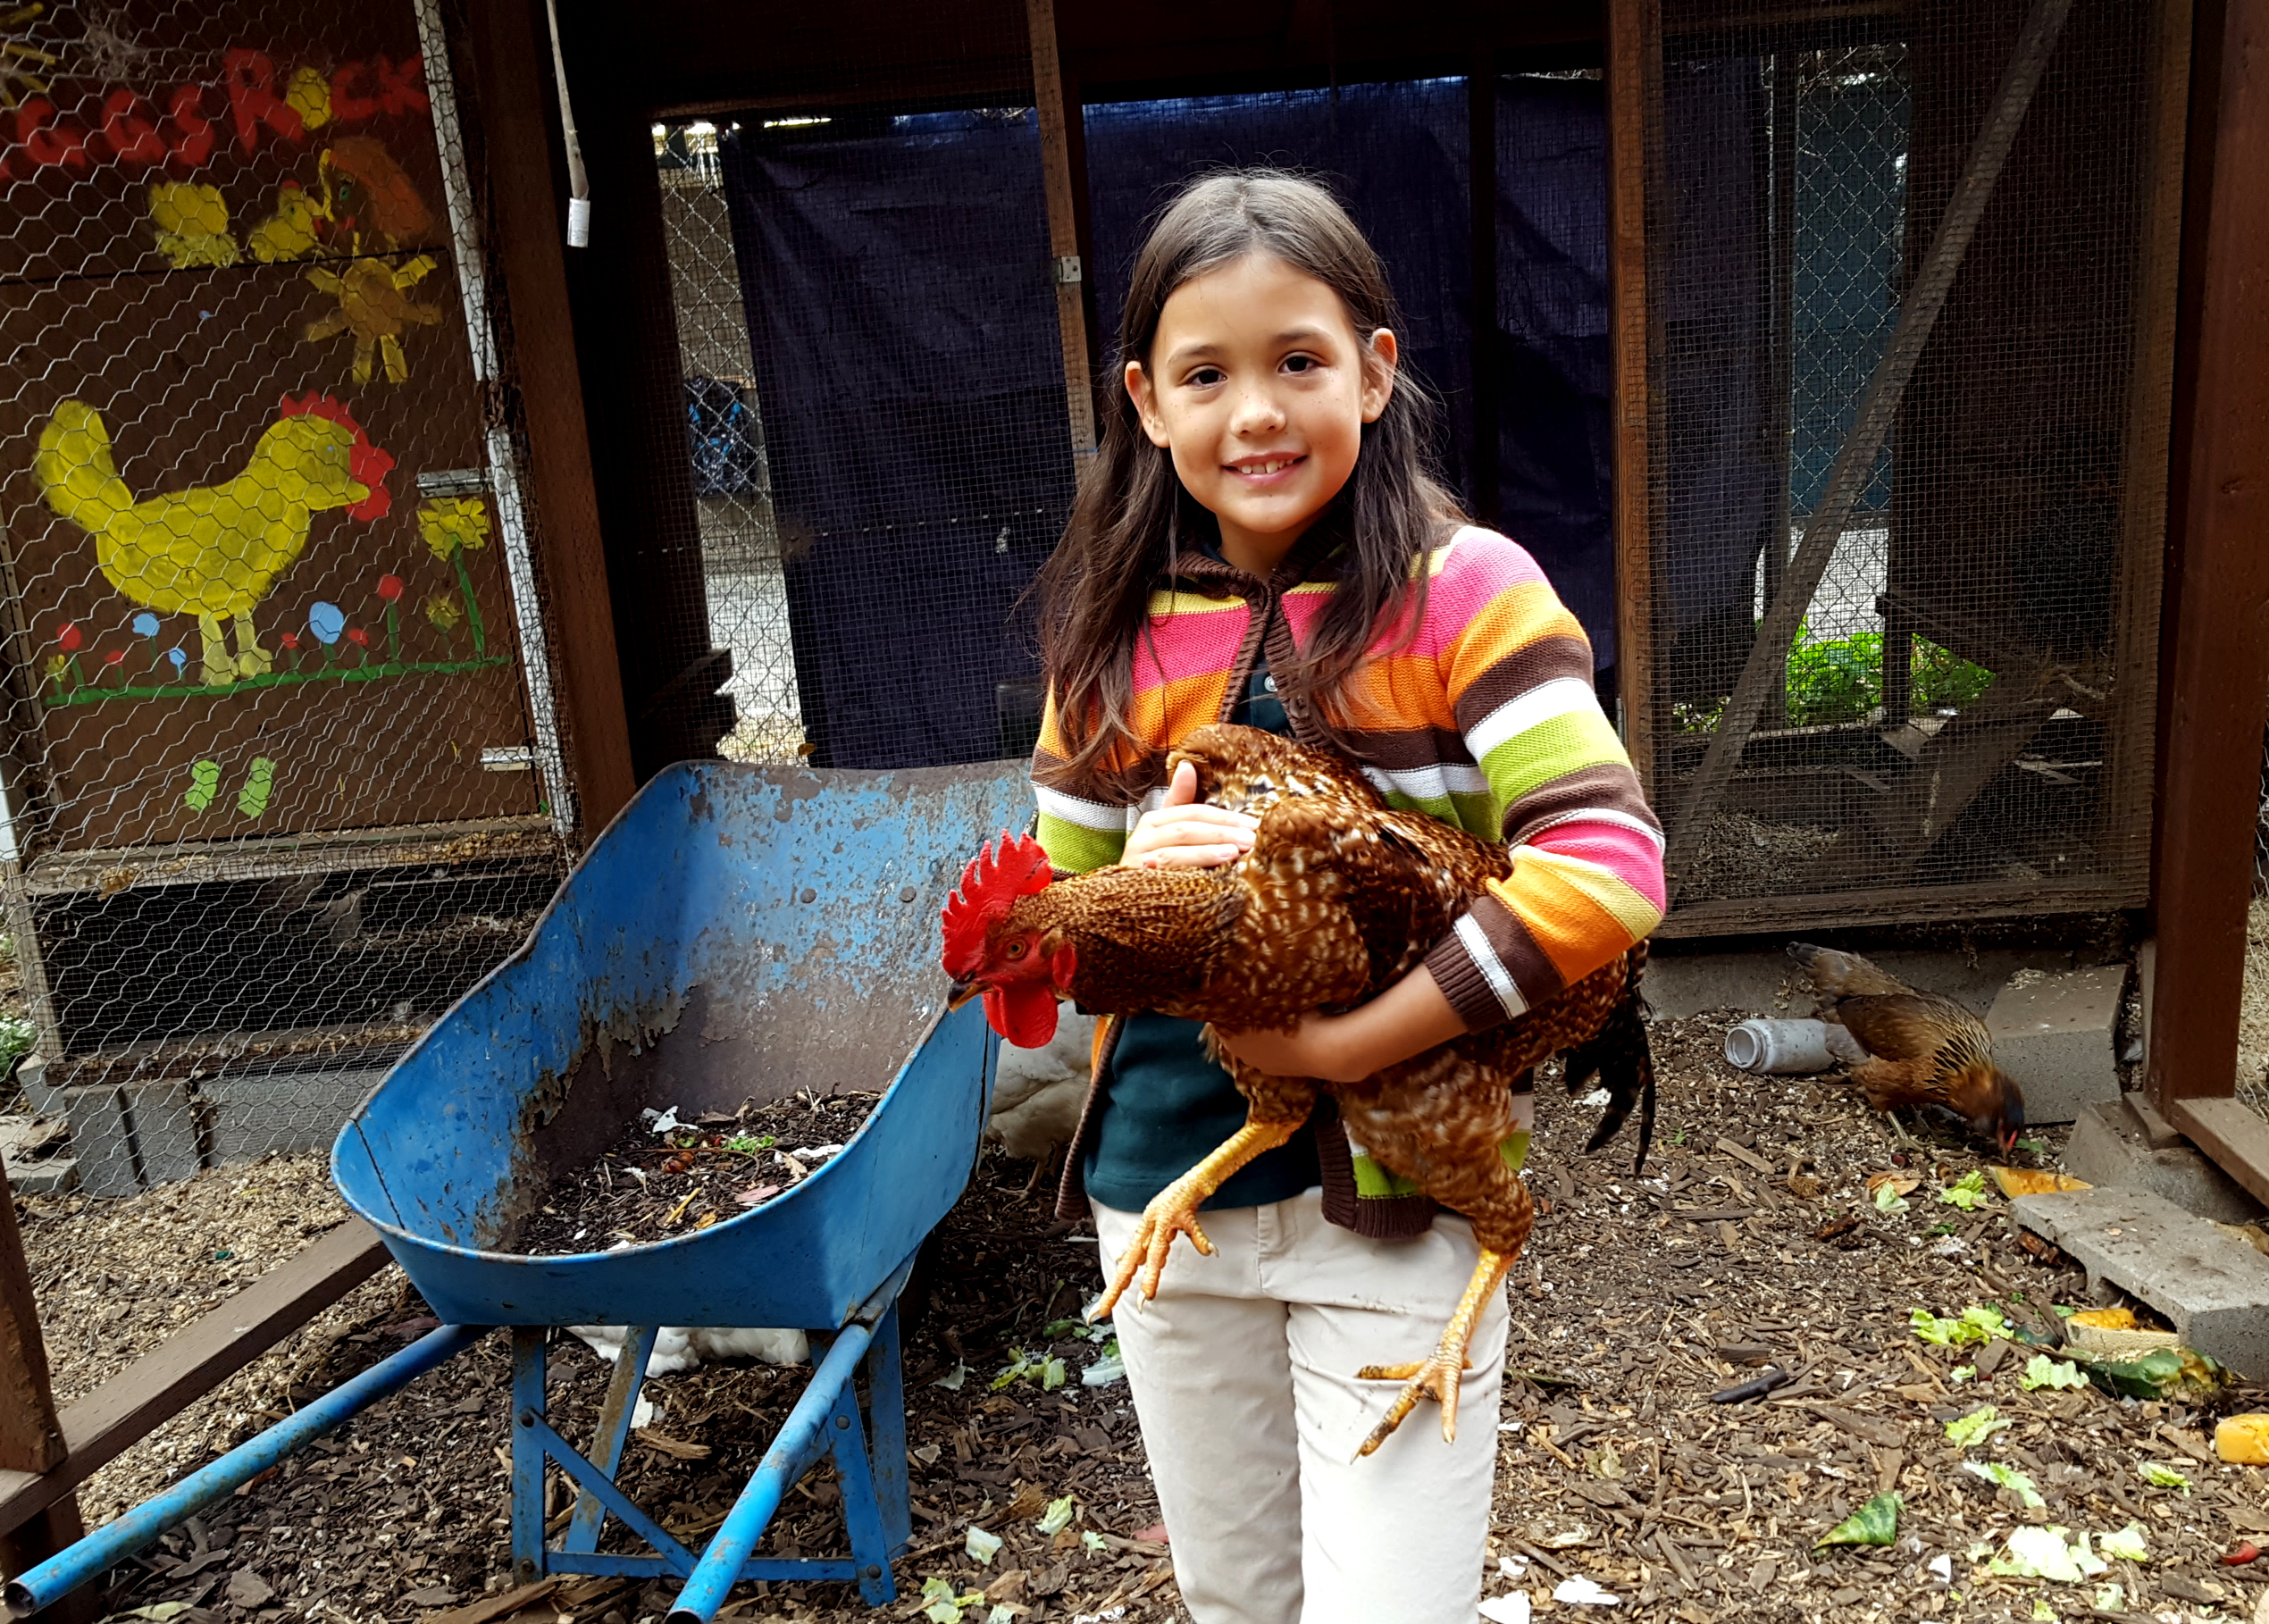 chickens_roo_maezy_630x451